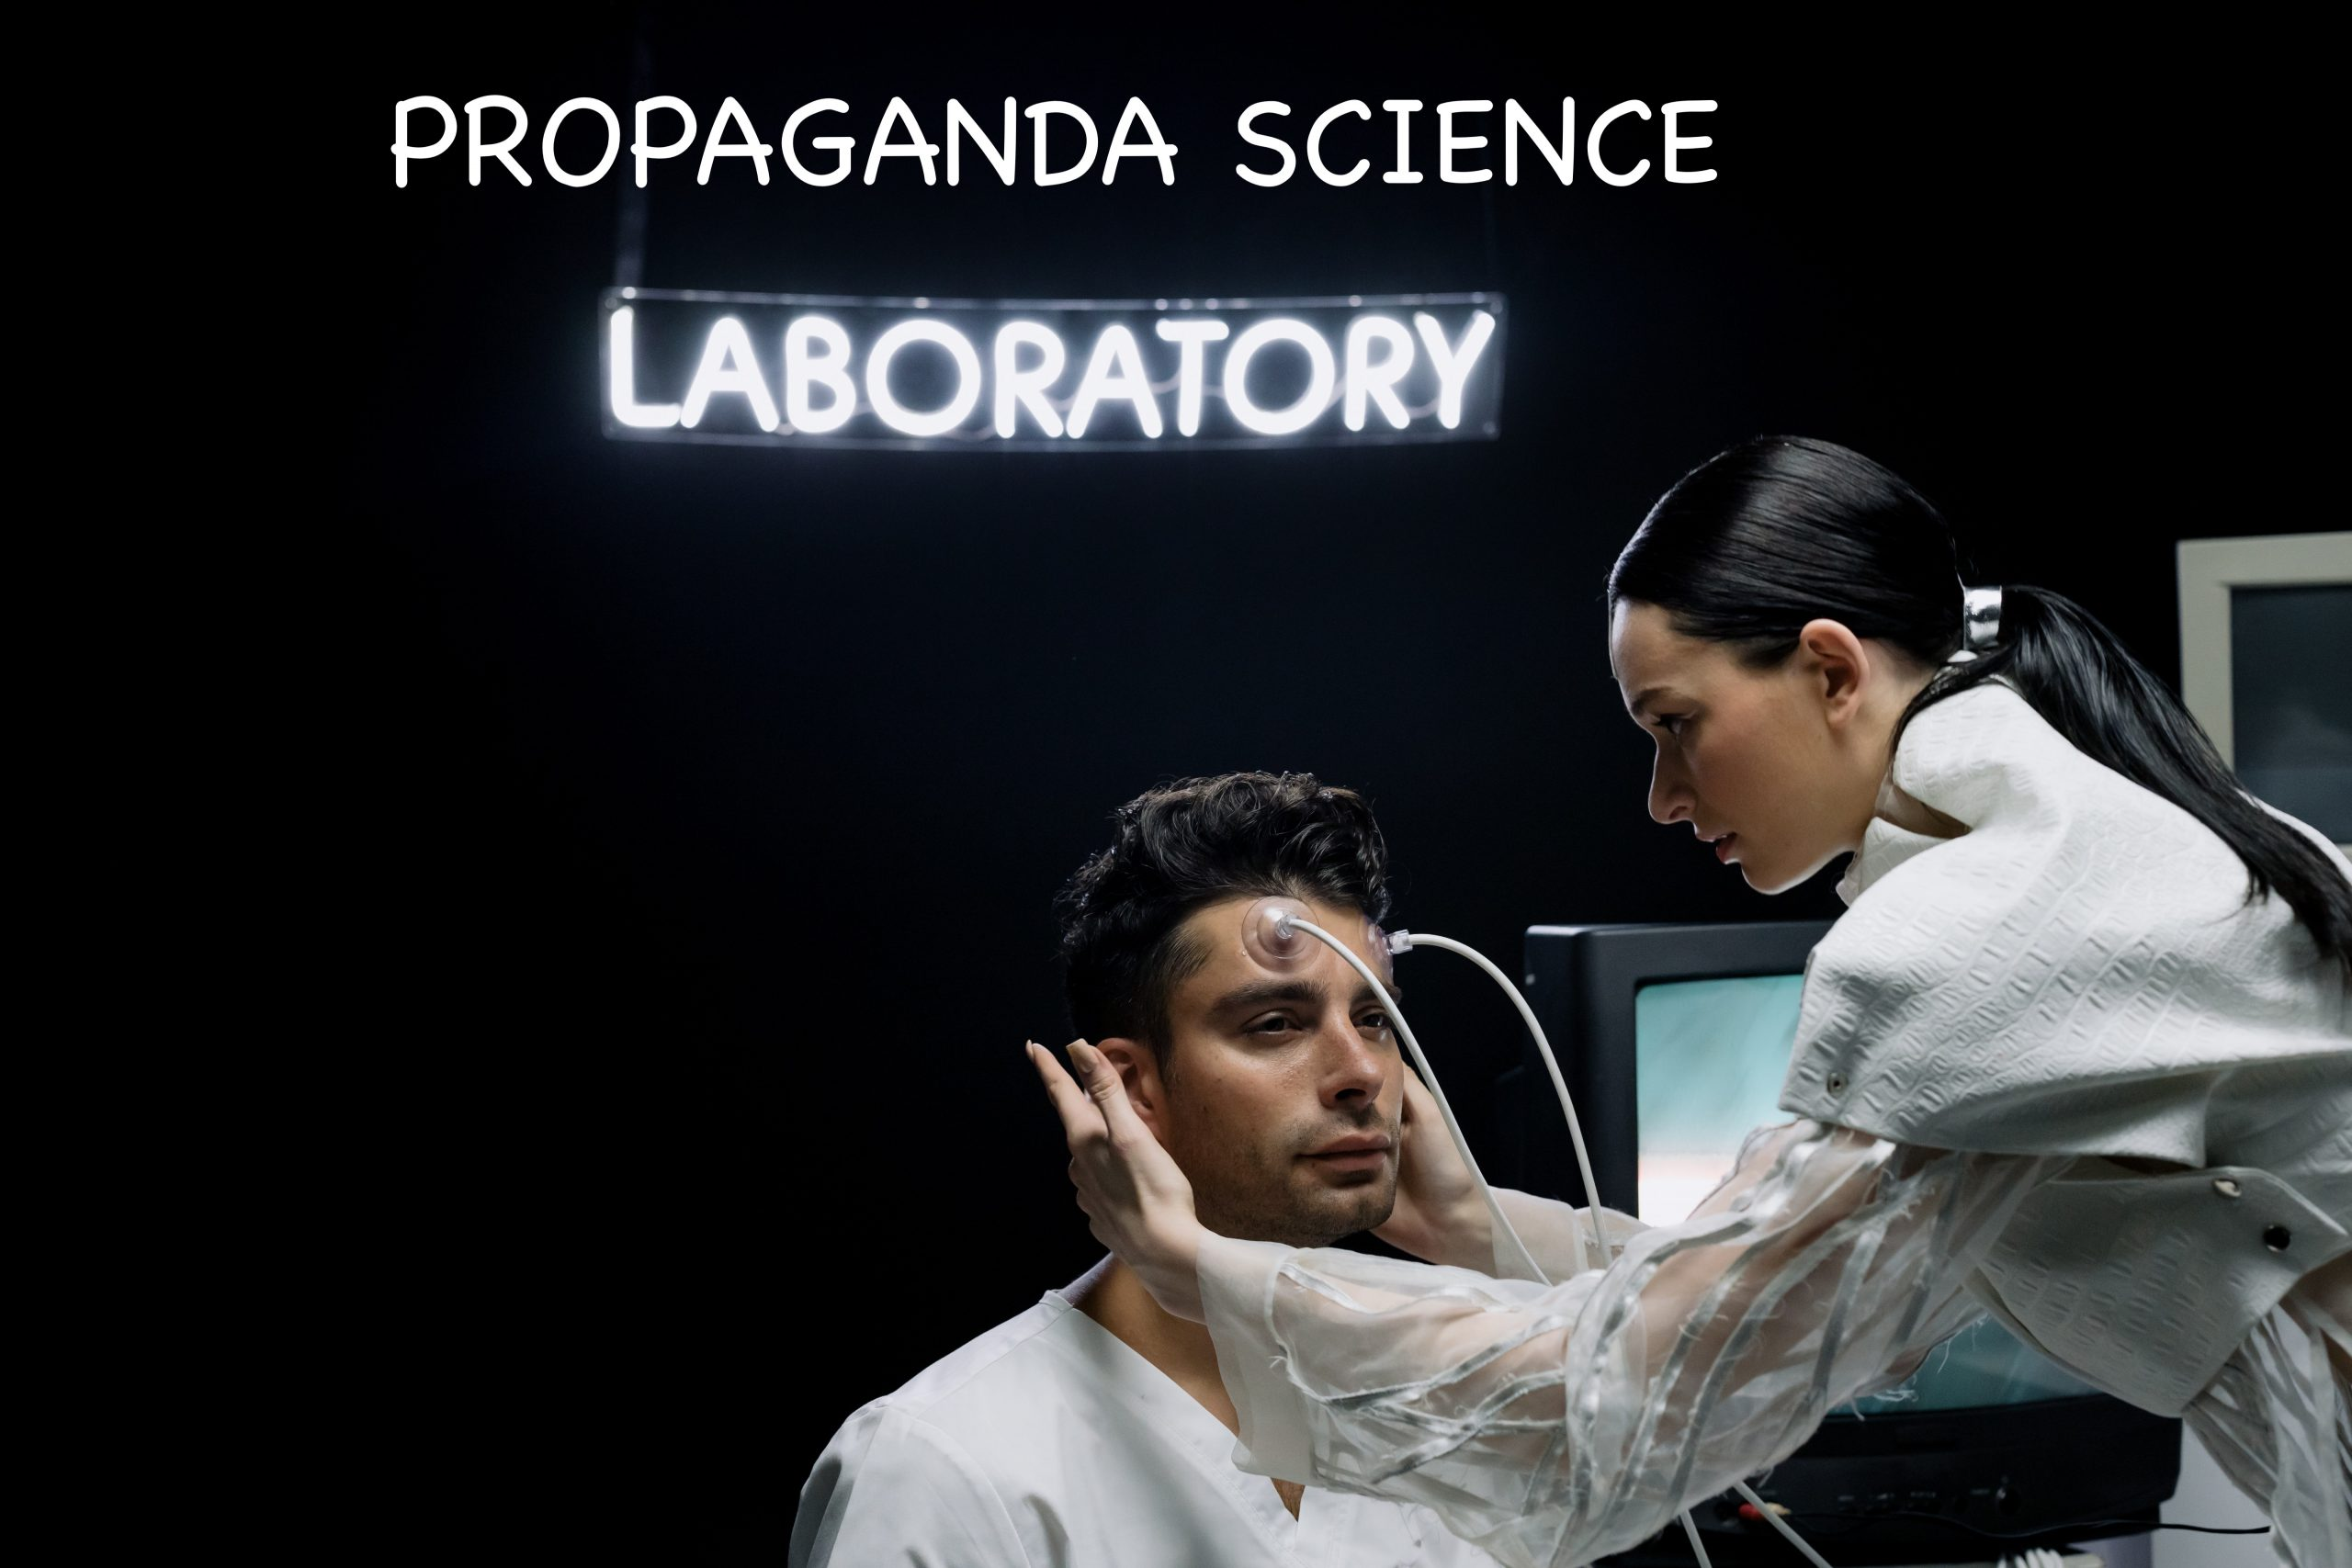 THE SCIENCE OF PROPAGANDA TAKES OVER TRADITIONAL SCIENCE!